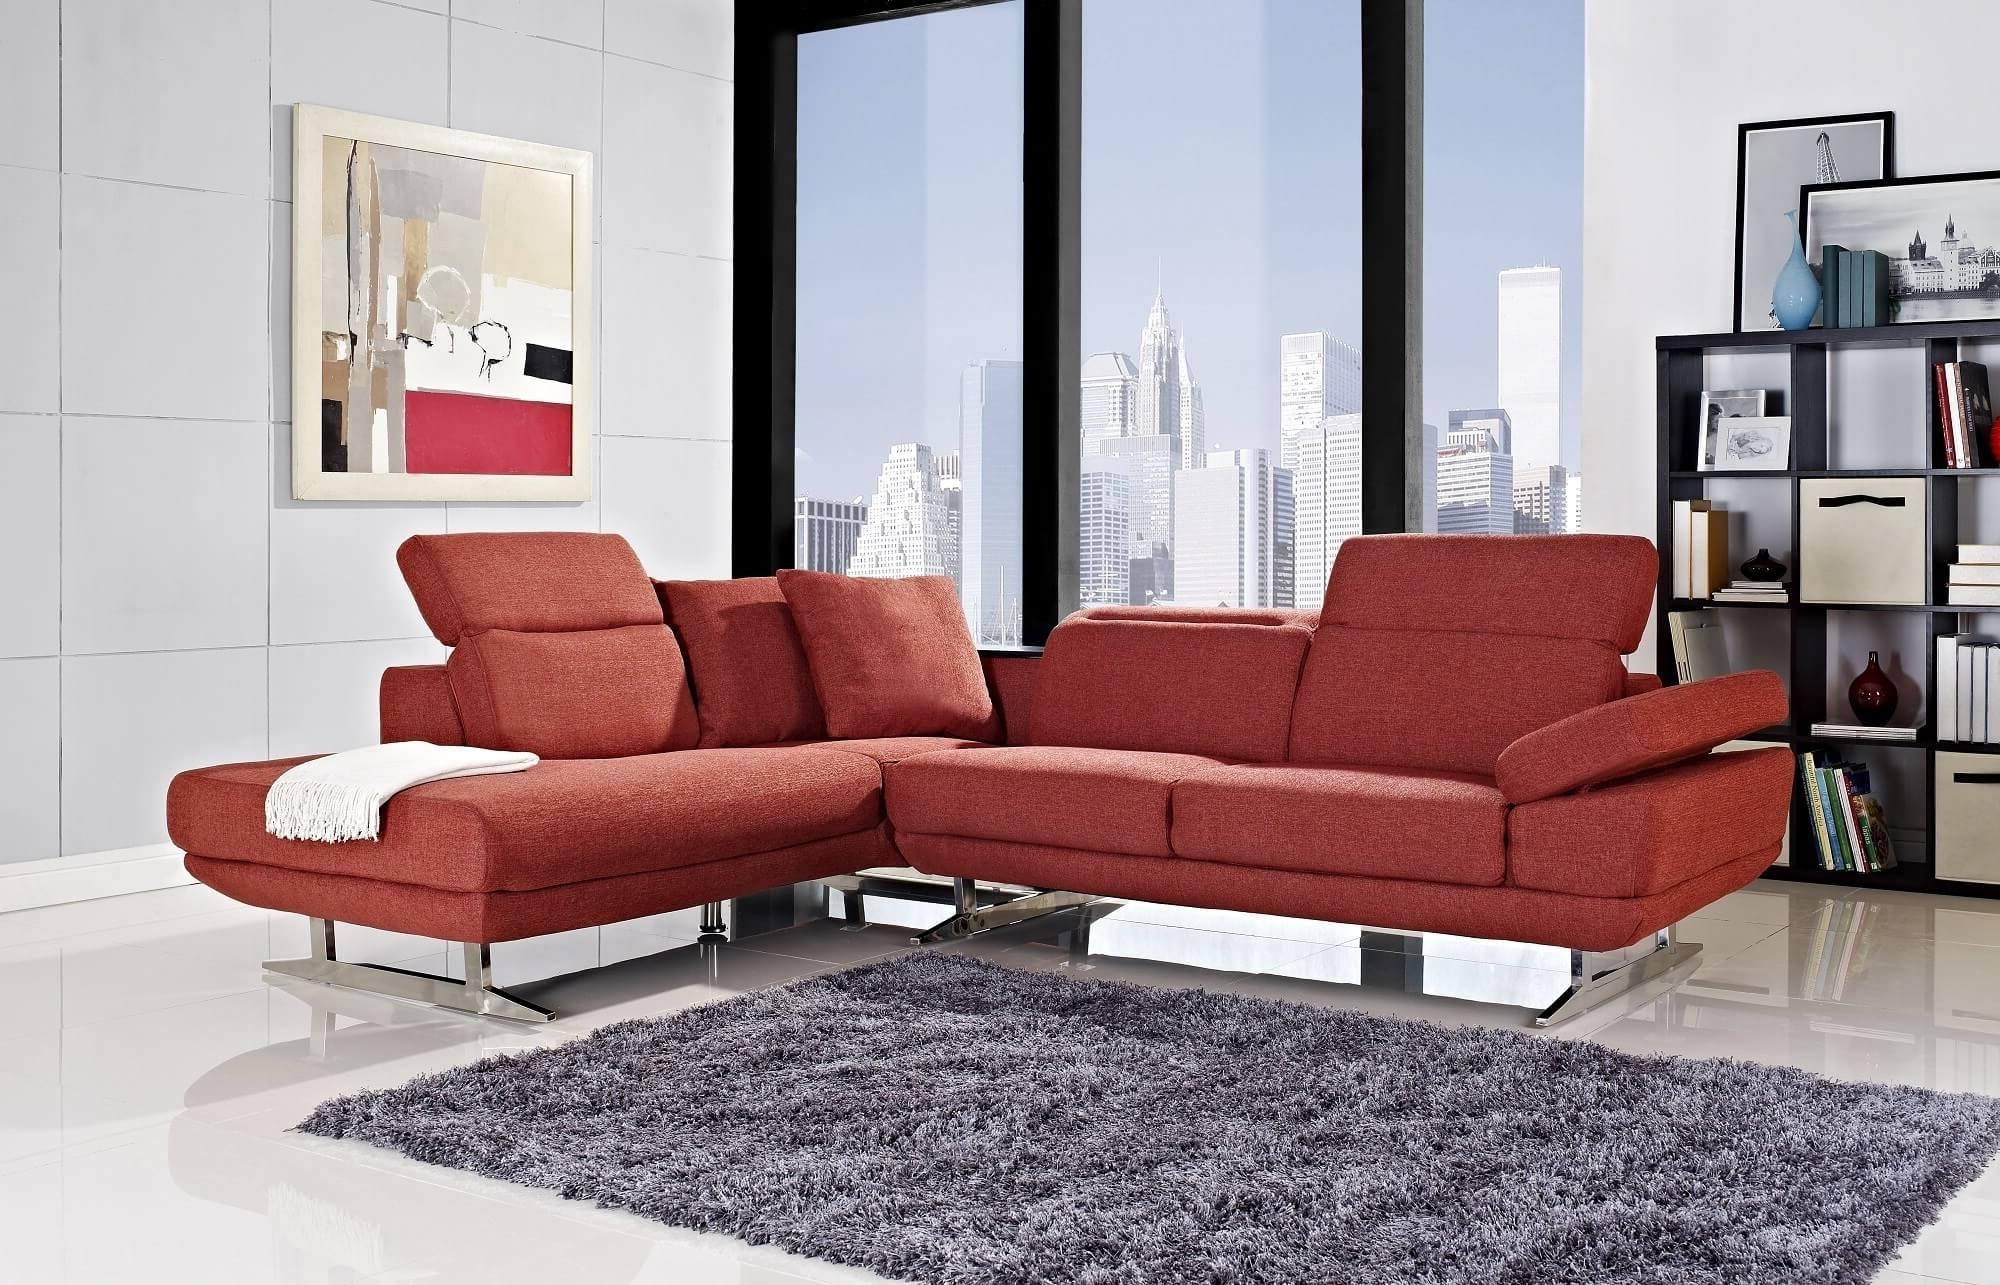 Small Red Leather Sectional Sofas In Most Recently Released 18 Stylish Modern Red Sectional Sofas (View 14 of 20)